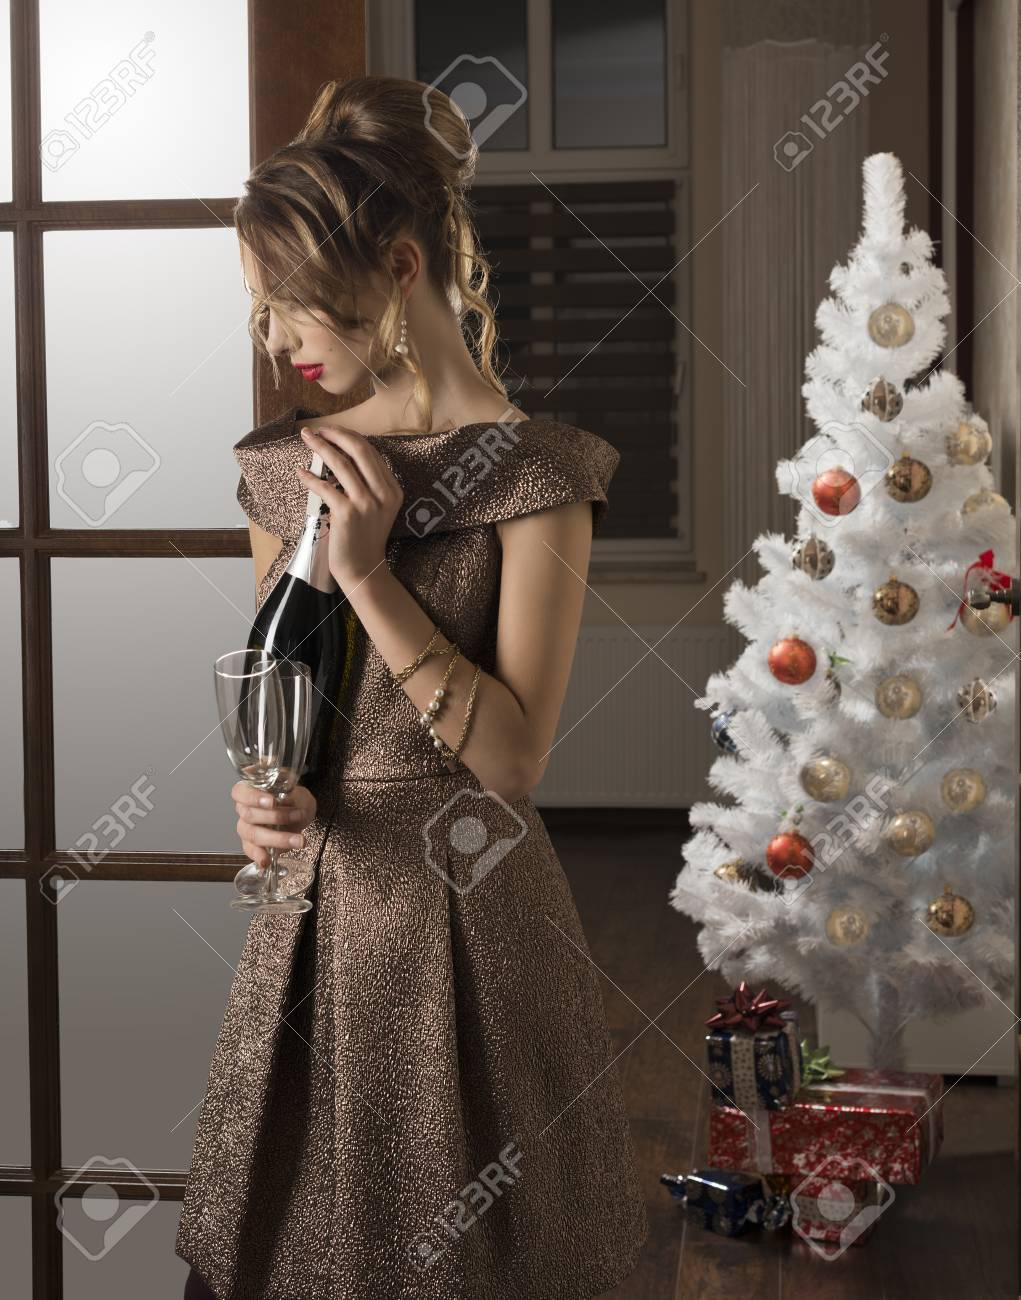 87eec77bc2ee sensual brunette girl with elegant style at happy new year party taking  bottle of champagne and